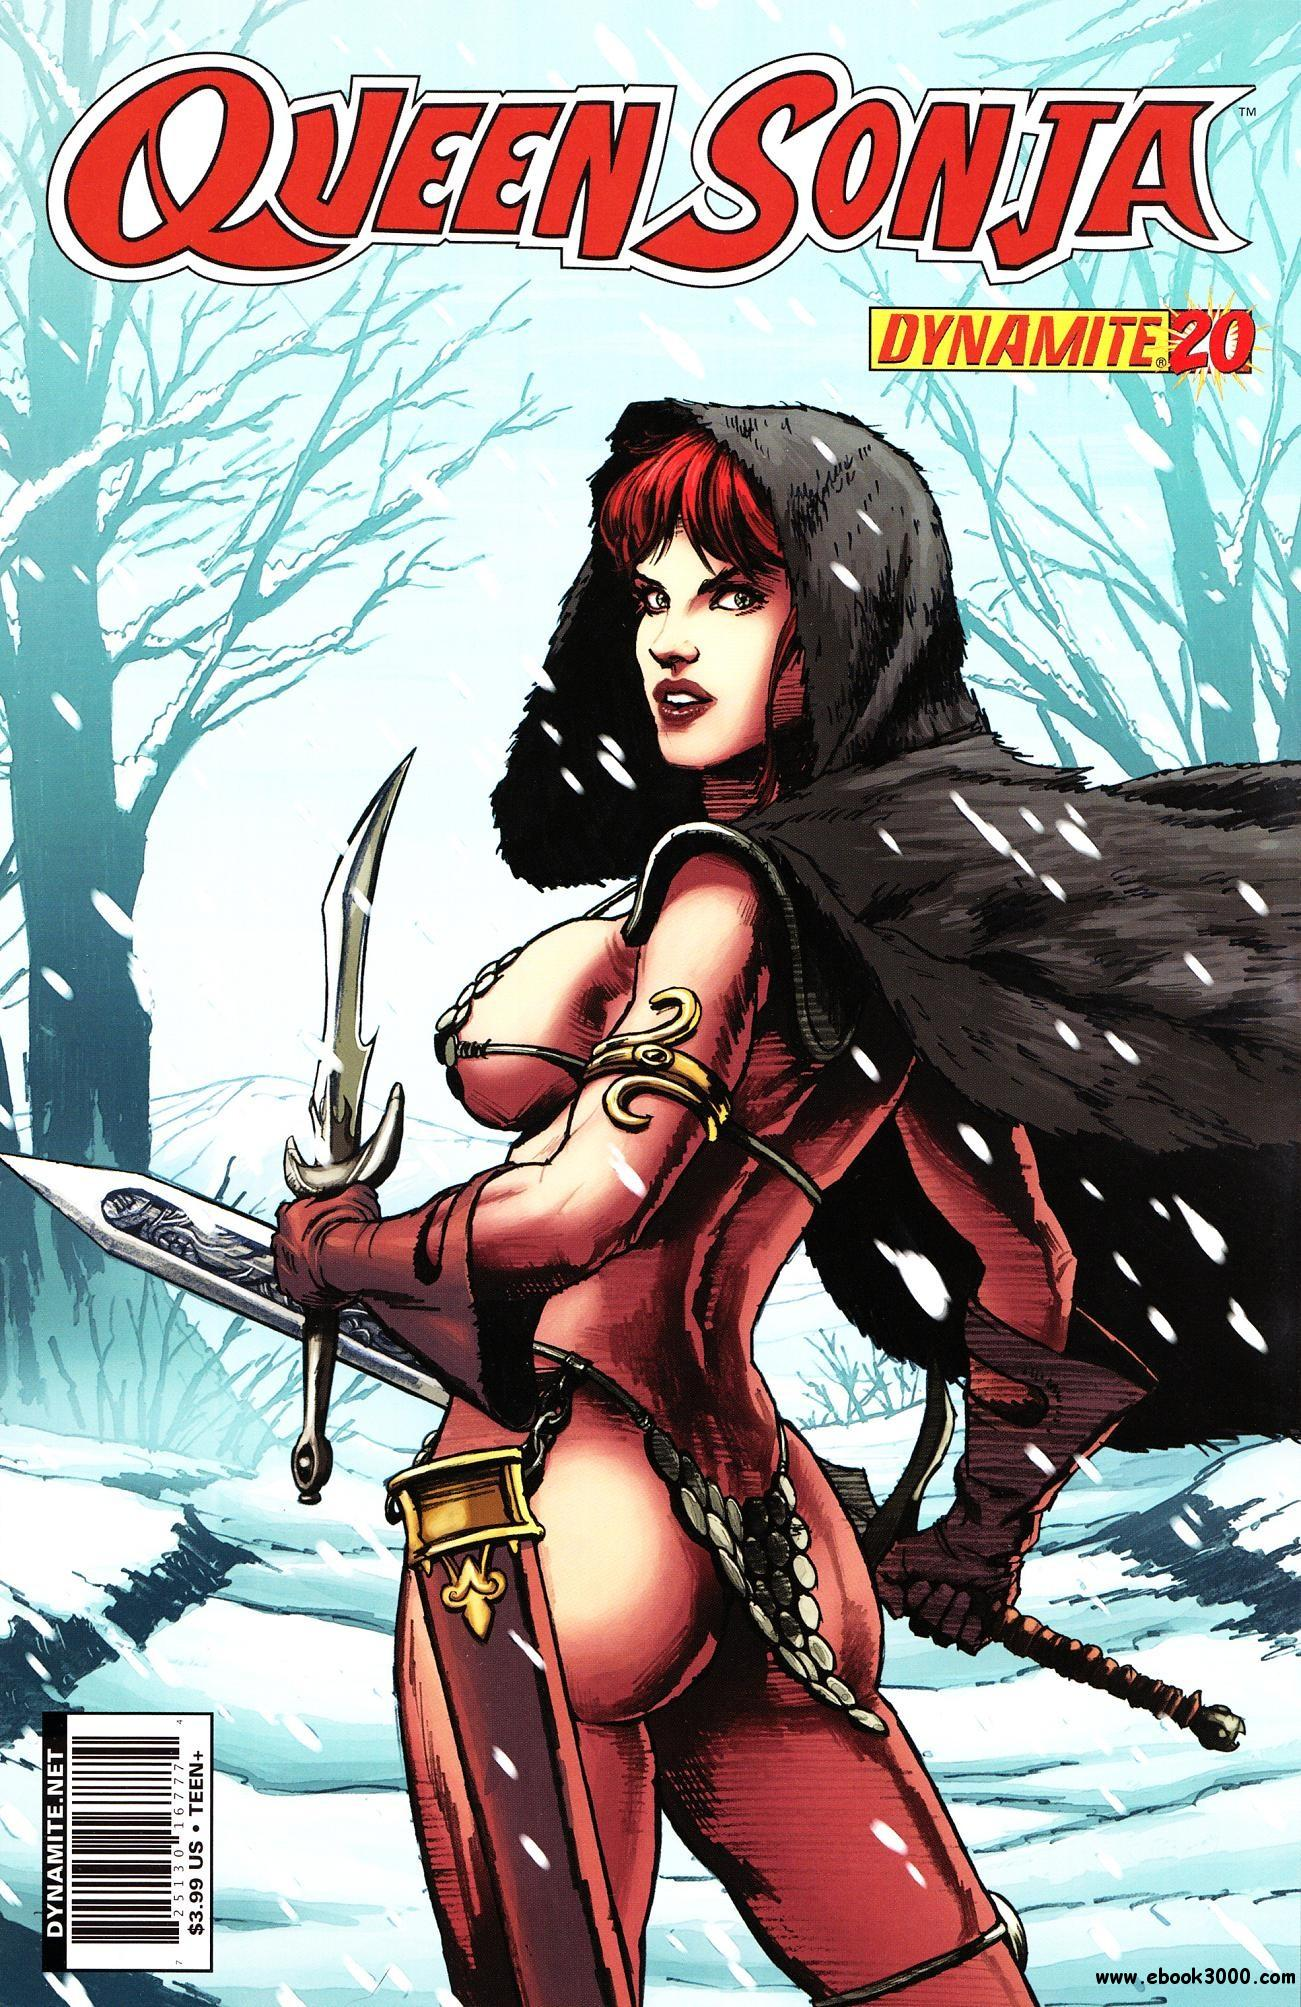 Queen Sonja #20 (2011) free download